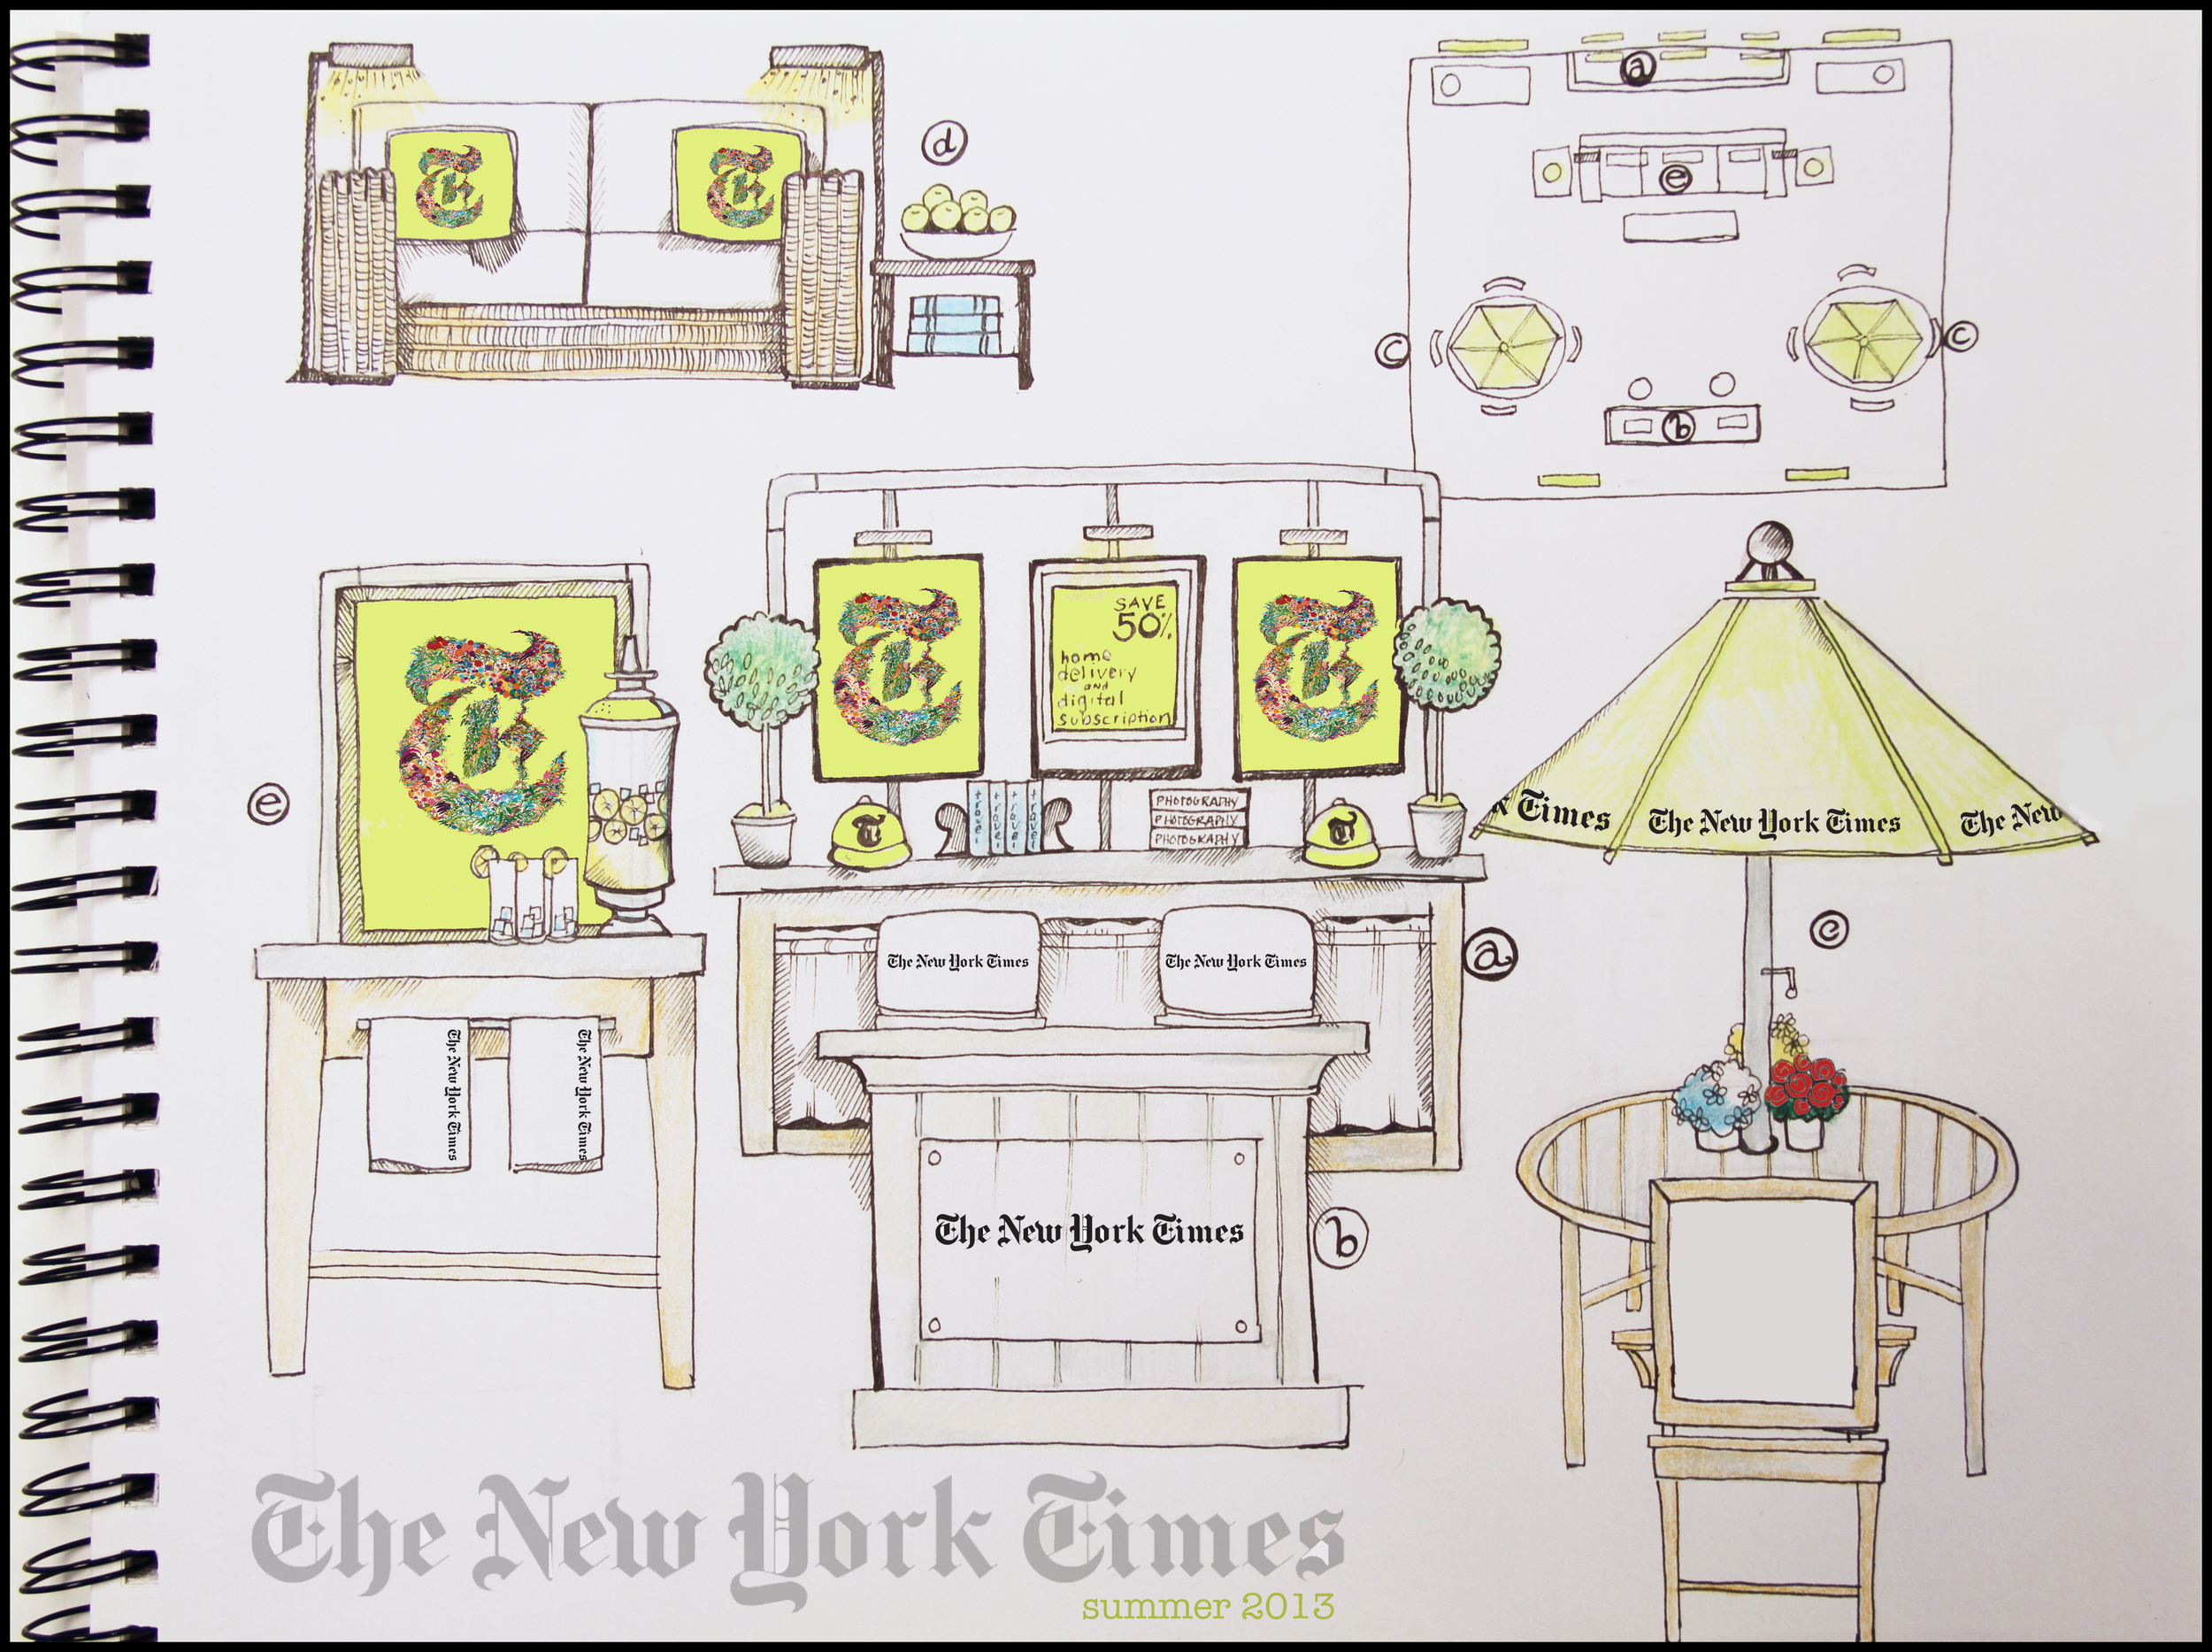 New York Times Marketing Space